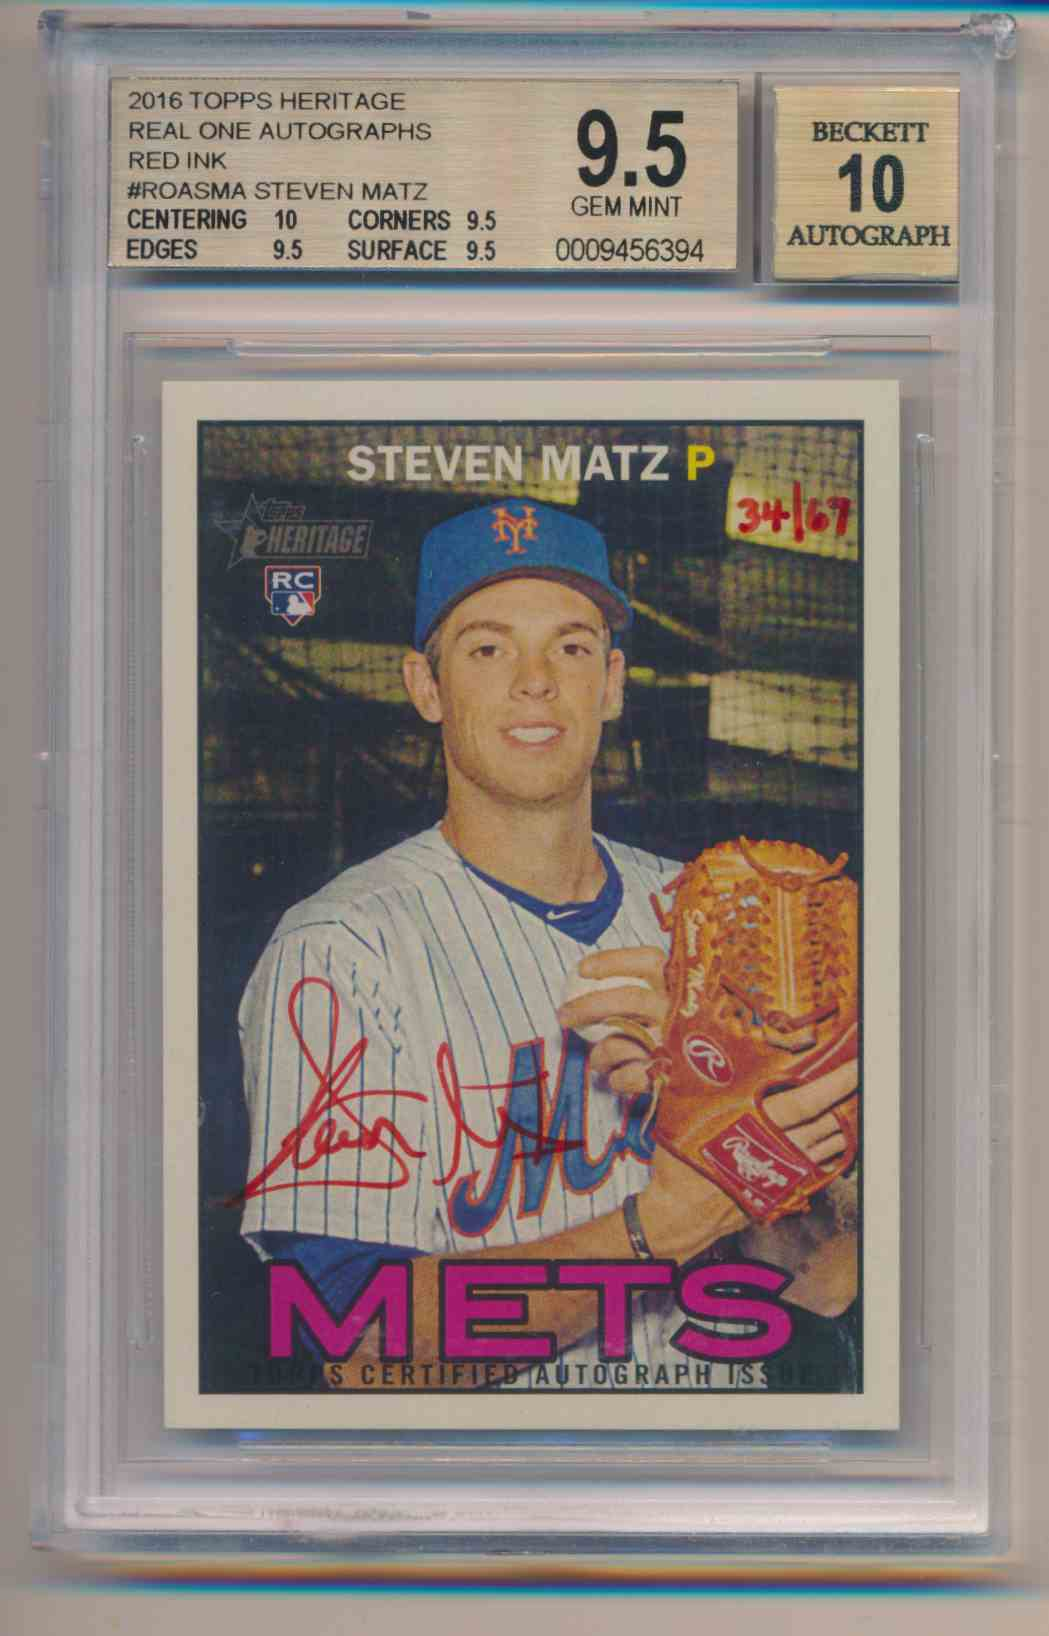 2016 Topps Heritage BGS 9.5 10 Auto Steve Matz Red Ink card front image